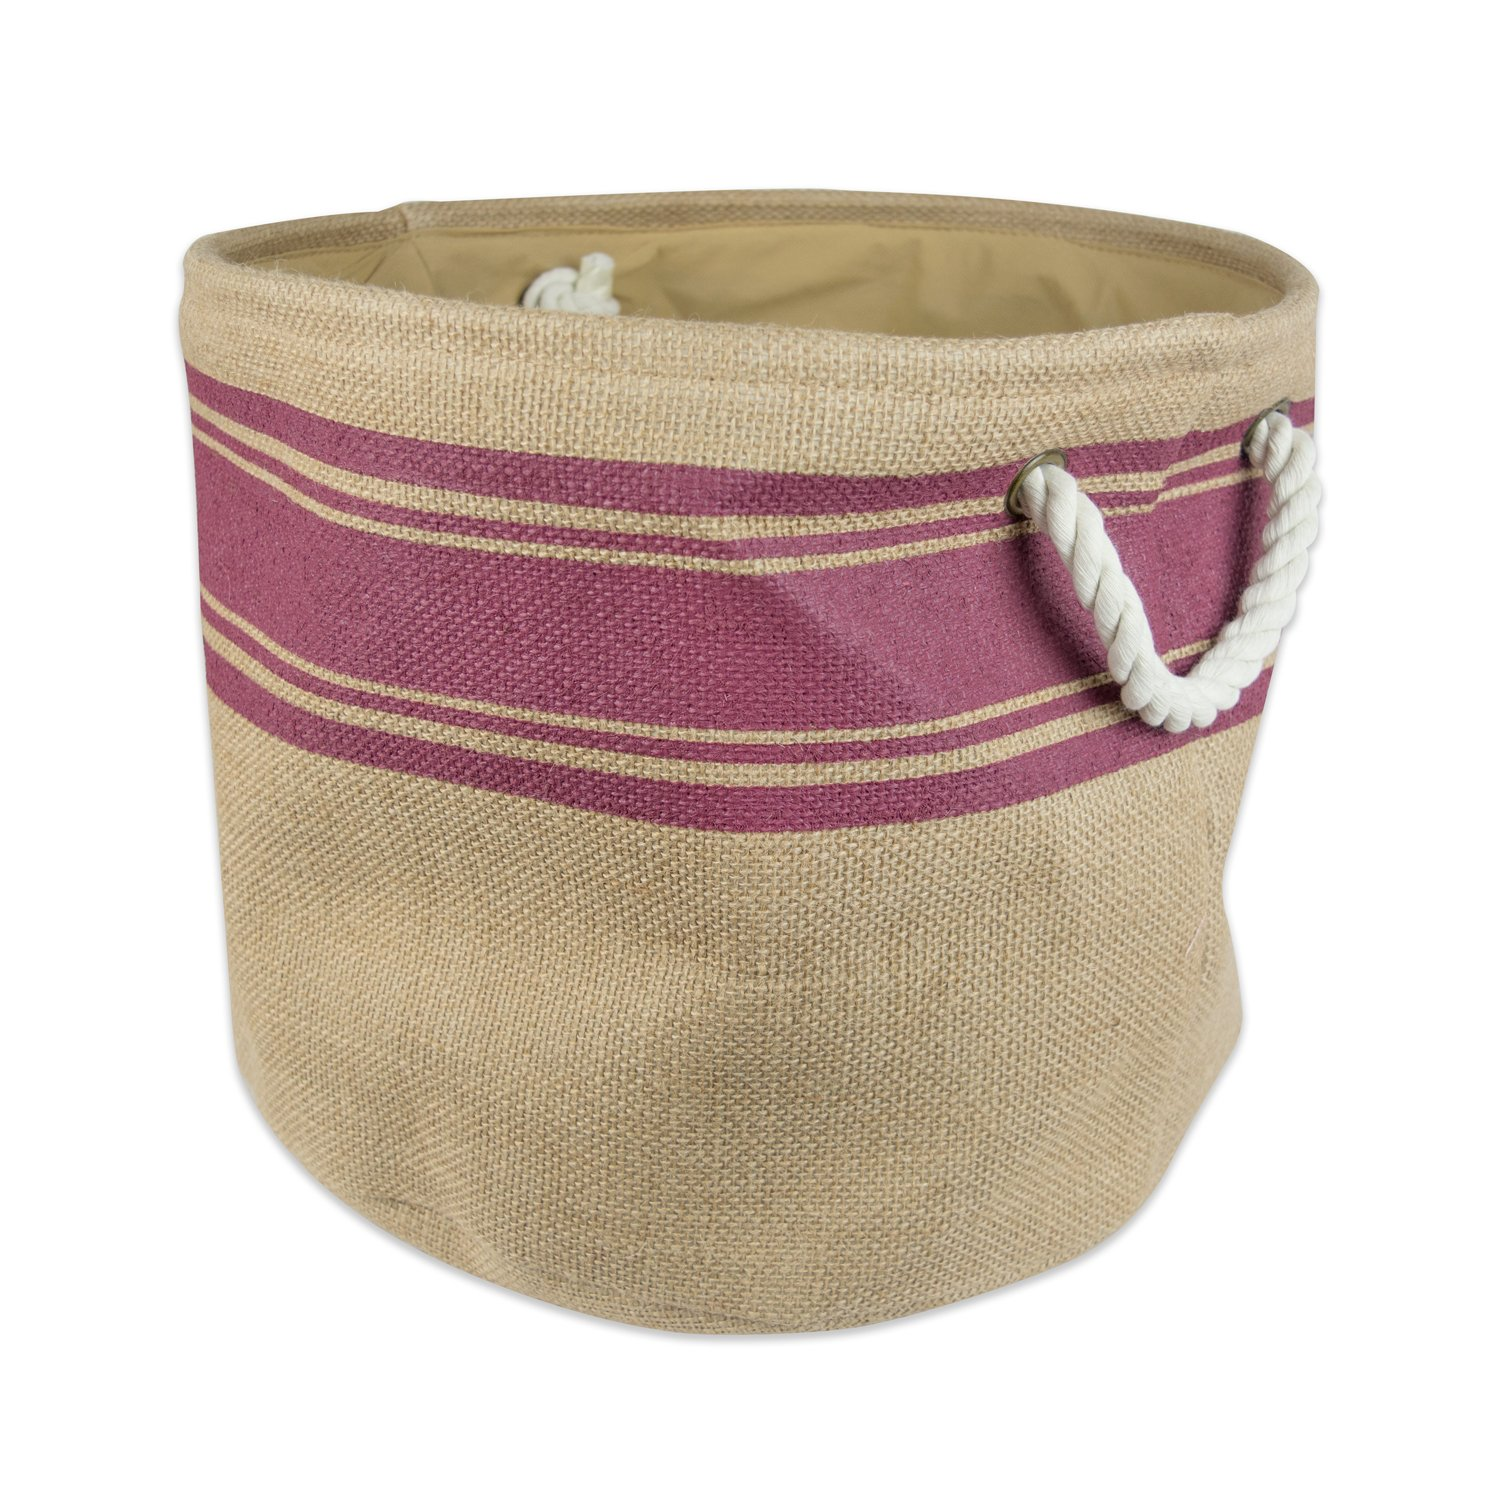 """DII Collapsible Burlap Storage Basket or Bin with Durable Cotton Handles, Home Organizational Solution for Office, Bedroom, Closet, Toys, & Laundry (Large Round – 16x15""""), Wine Border by DII (Image #1)"""